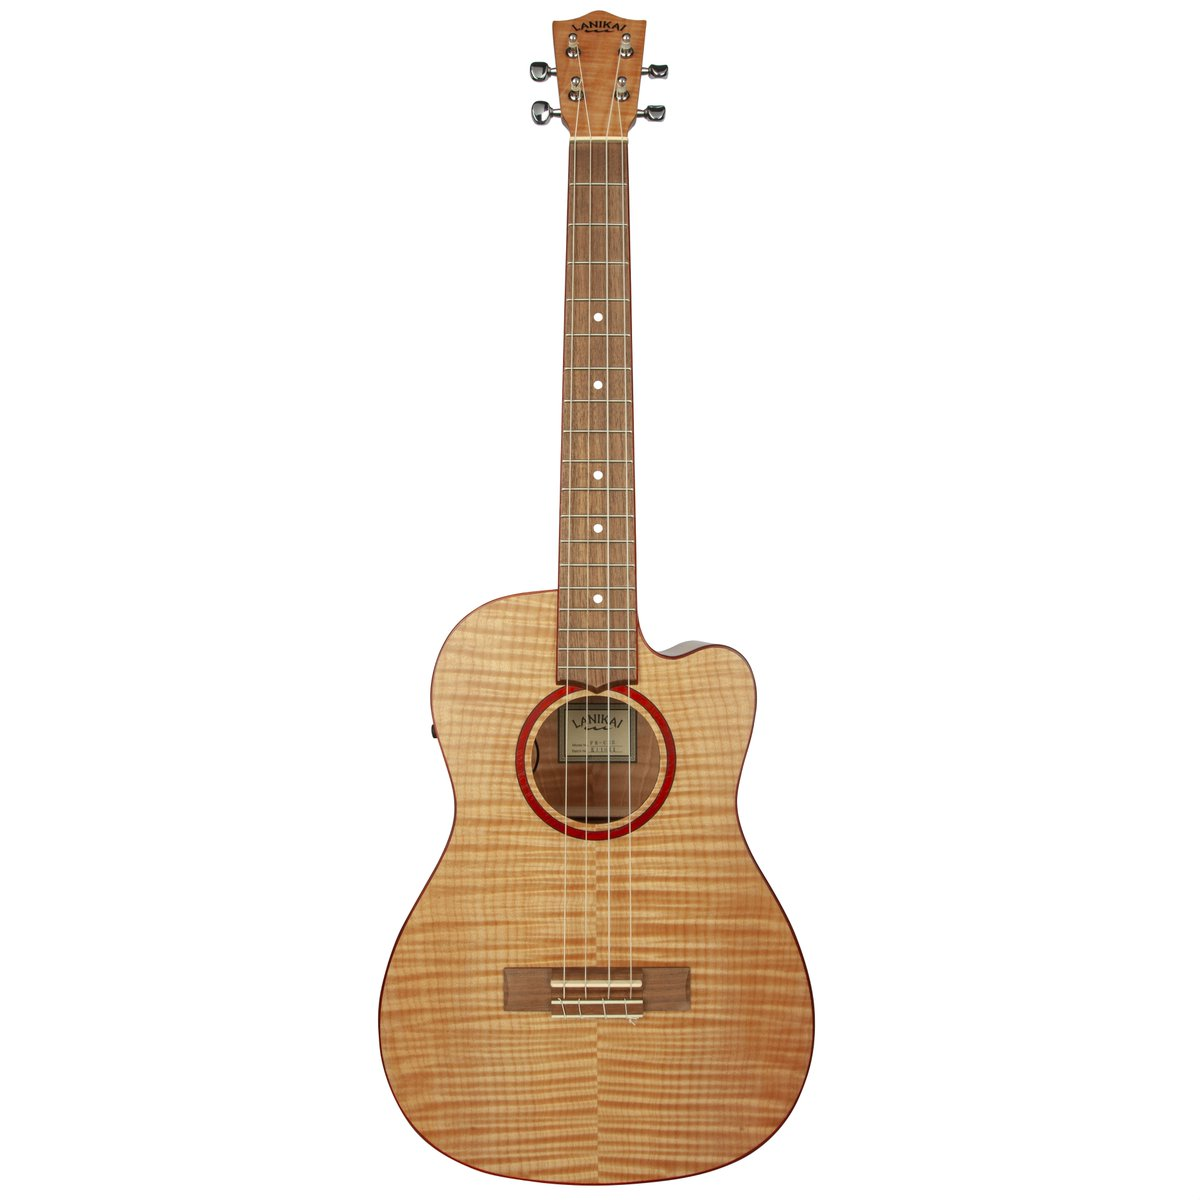 We have received many requests for an electric baritone so here is our NEW Flame Maple Cutaway Electric Baritone Ukulele!  #lanikaiukulele #lanikai #ukulele #baritoneukulele #ukuleles #NAMMShow #NAMM2019<br>http://pic.twitter.com/rTJmAx9WR8